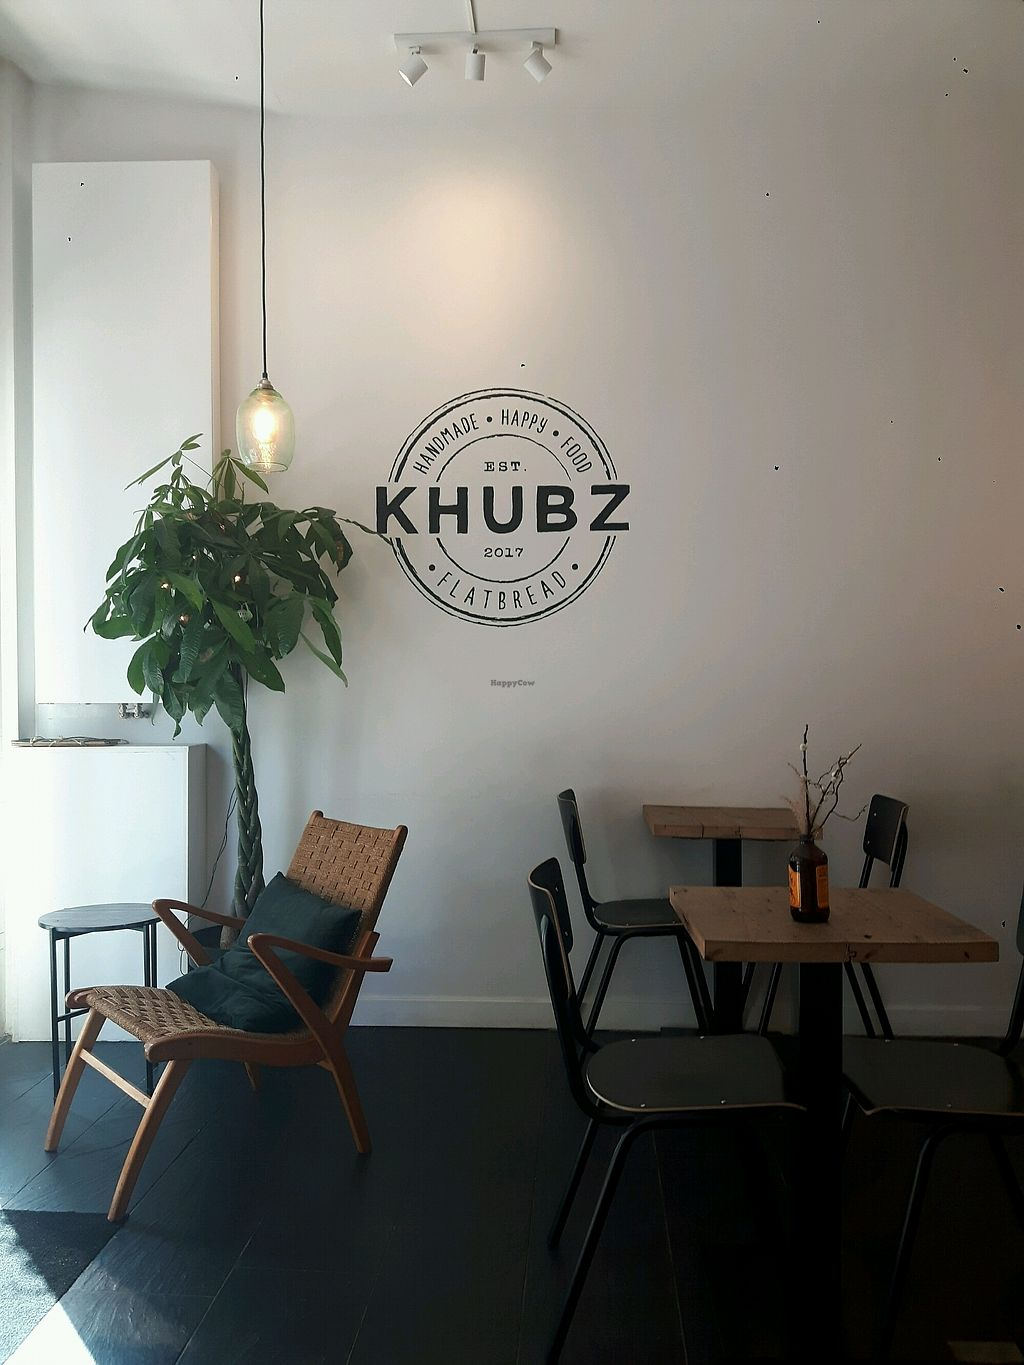 """Photo of Khubz  by <a href=""""/members/profile/westcall"""">westcall</a> <br/>KHUBZ Haarlem <br/> April 18, 2018  - <a href='/contact/abuse/image/117366/387602'>Report</a>"""